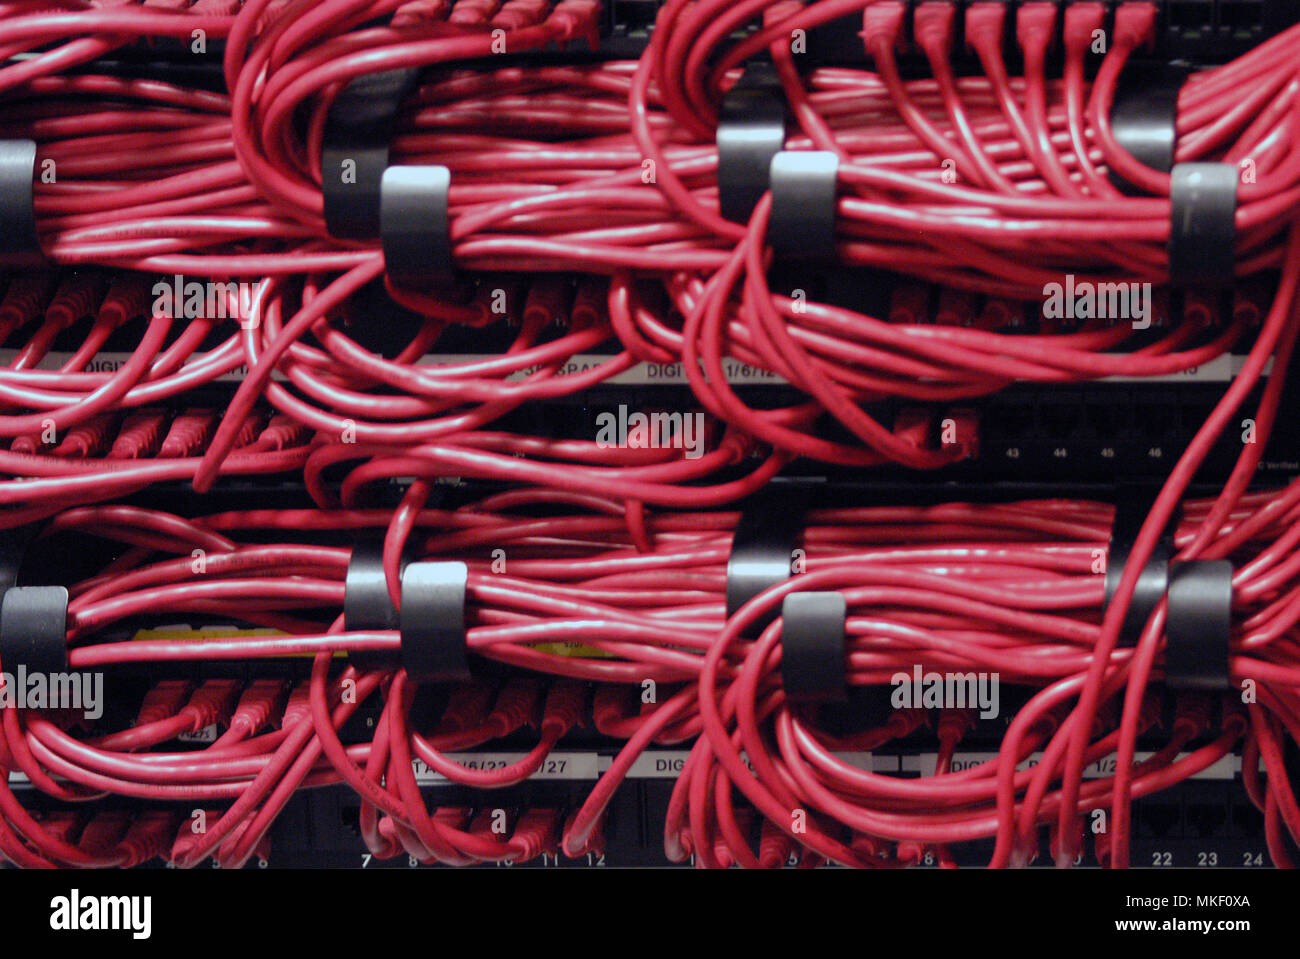 Wiring Loom Stock Photos Images Alamy A320 Harness Rear Of Computer Server Showing Image